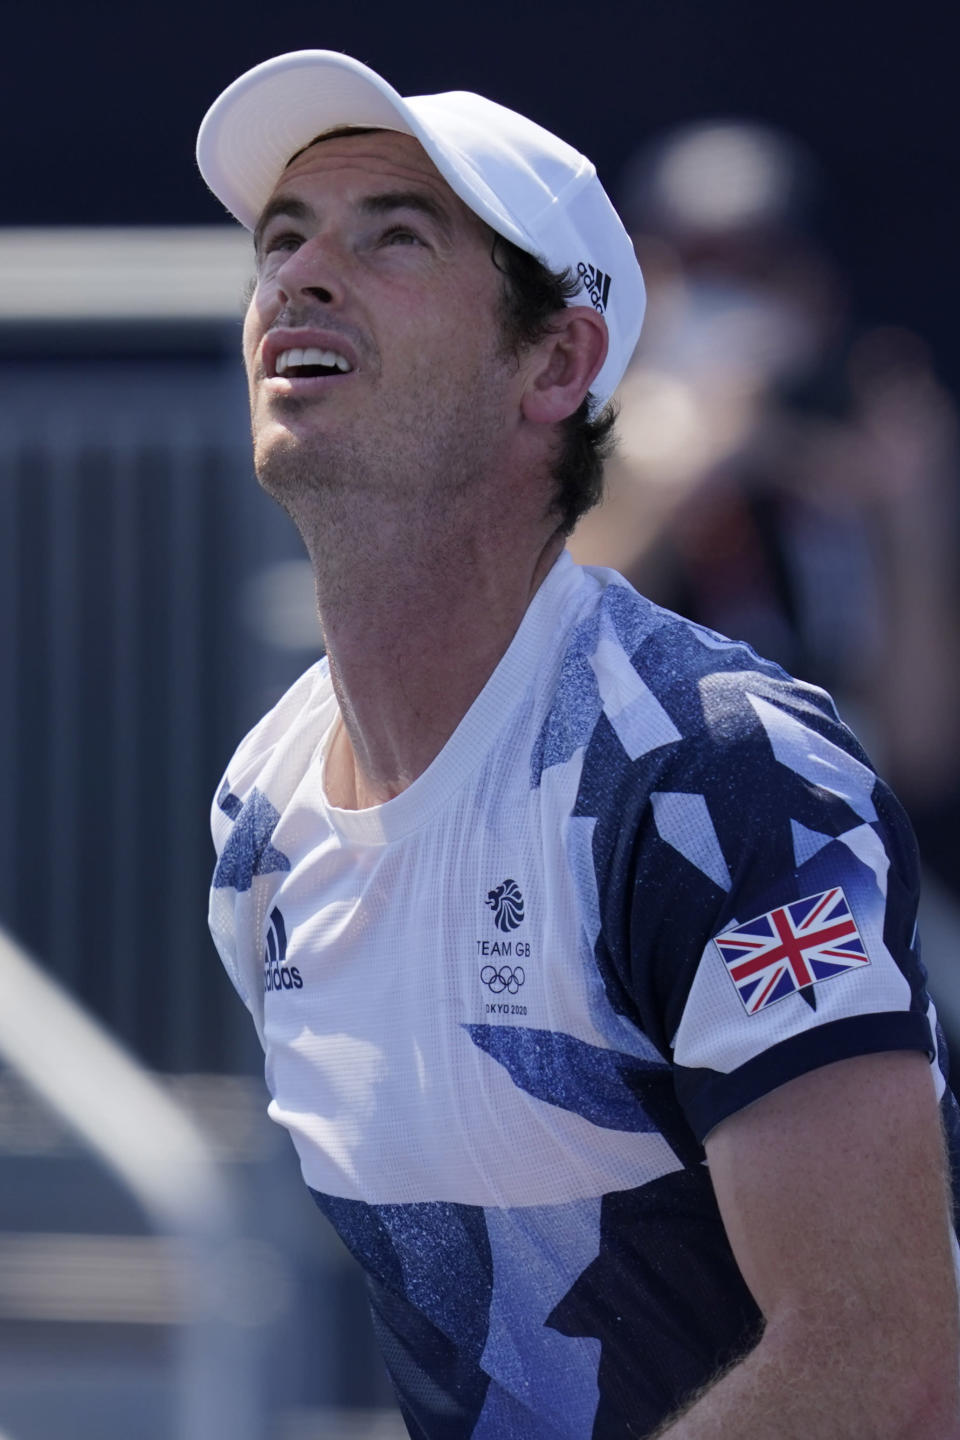 Andy Murray, of Britain, played in a doubles match during the first round of the tennis competition at the 2020 Summer Olympics, Saturday, July 24, 2021, in Tokyo, Japan. (AP Photo/Seth Wenig)